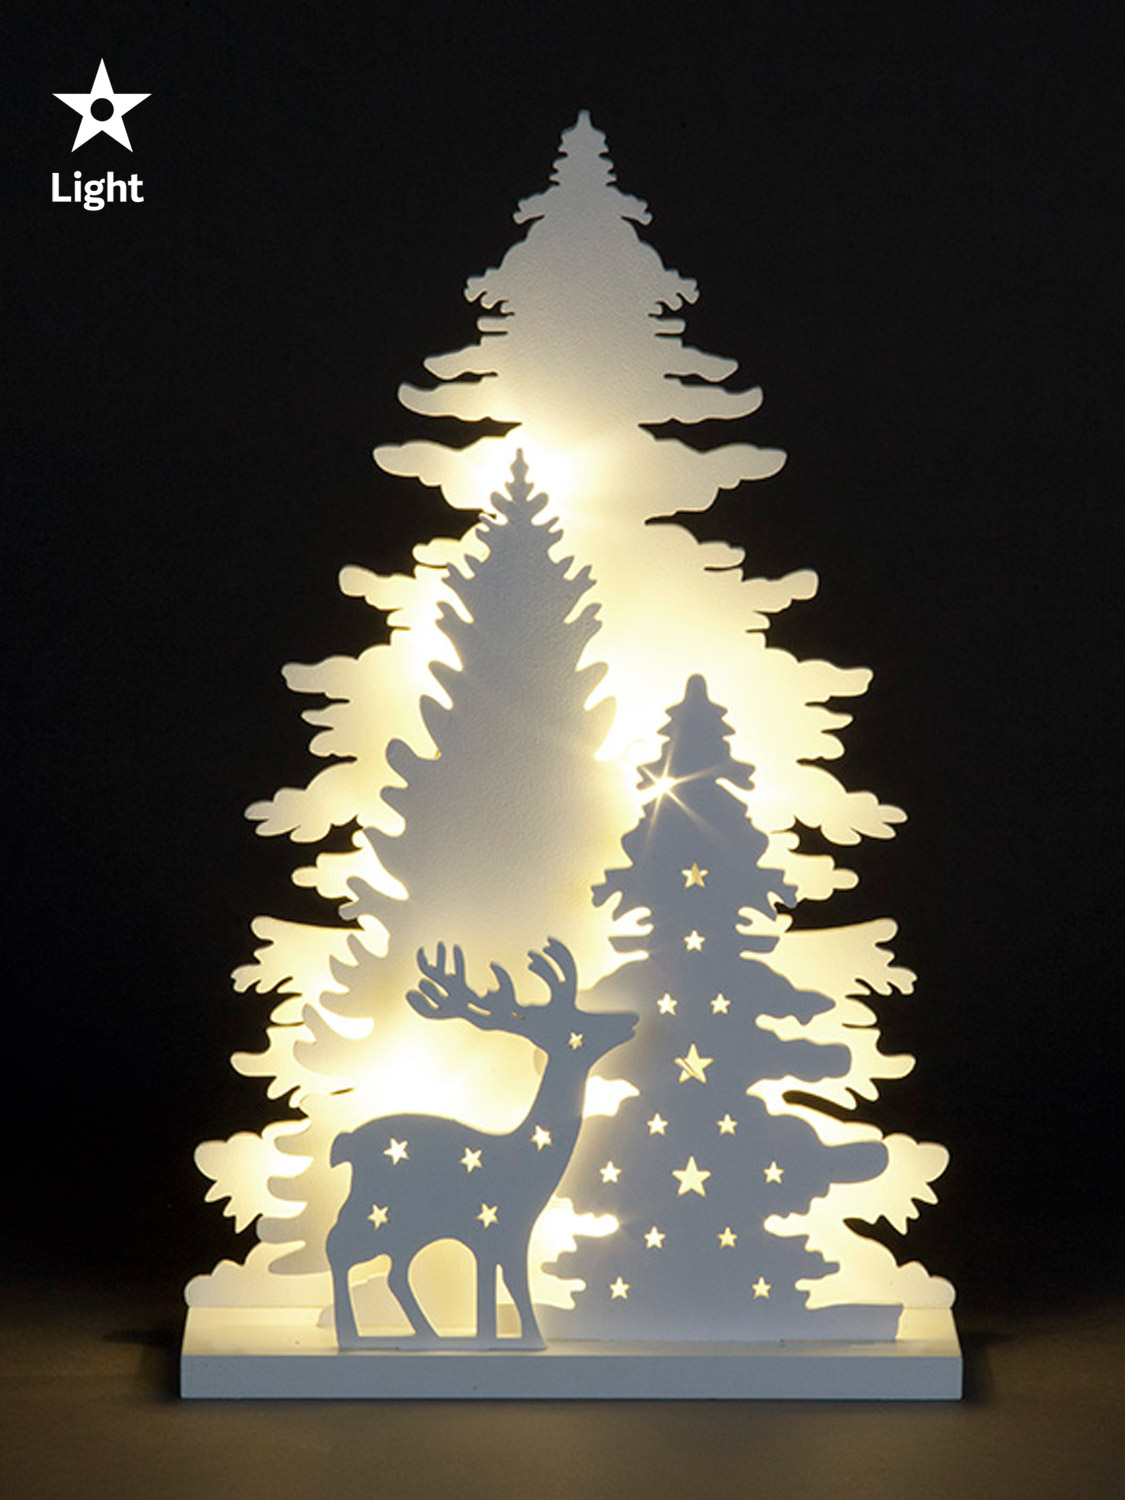 Wooden White Light Up Decorations Christmas LED Ornament